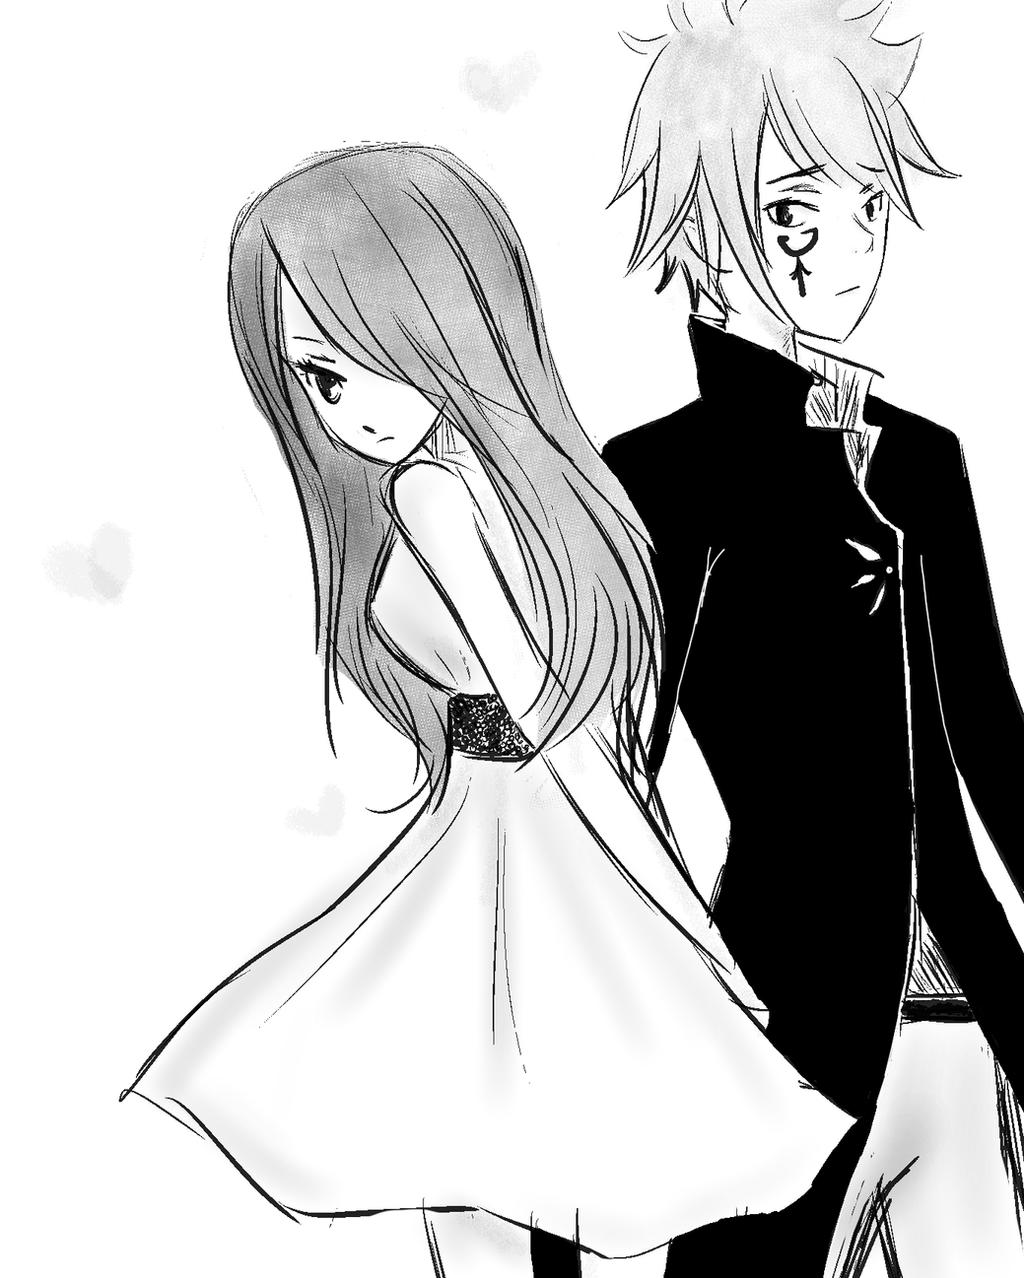 erza and jellal relationship goals